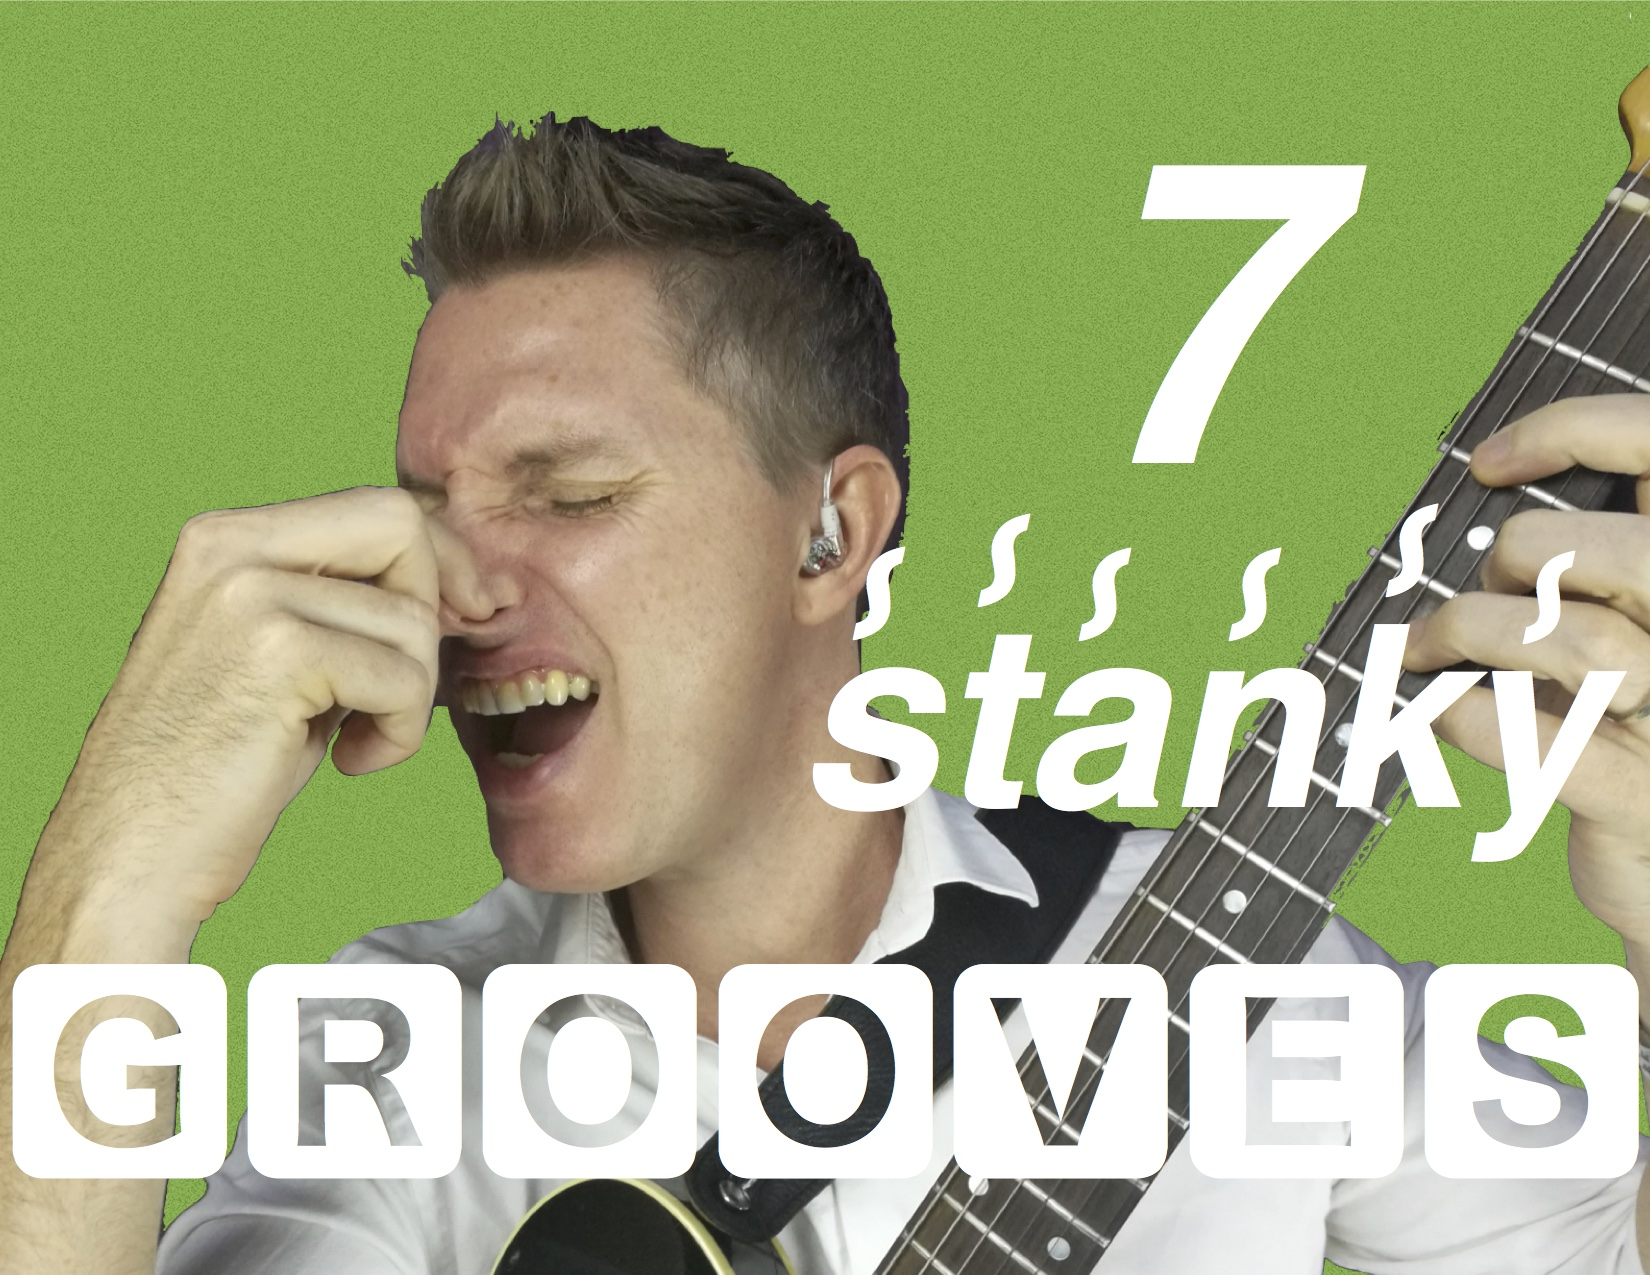 7 stanky grooves funk guitar lessons